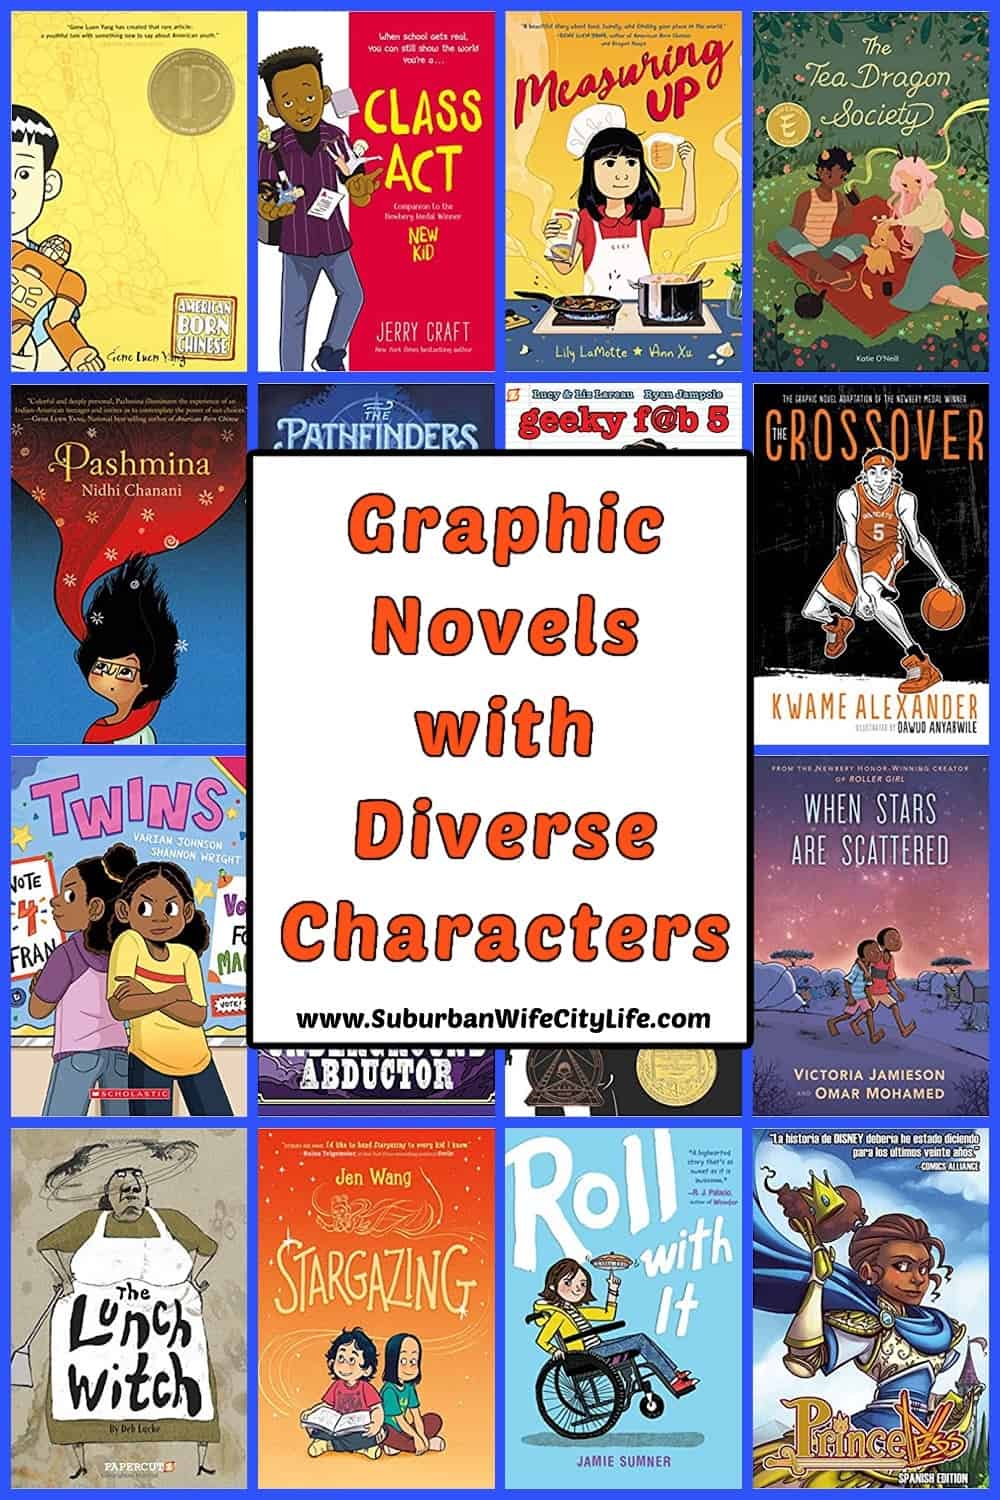 Graphic Novels with Diverse Characters